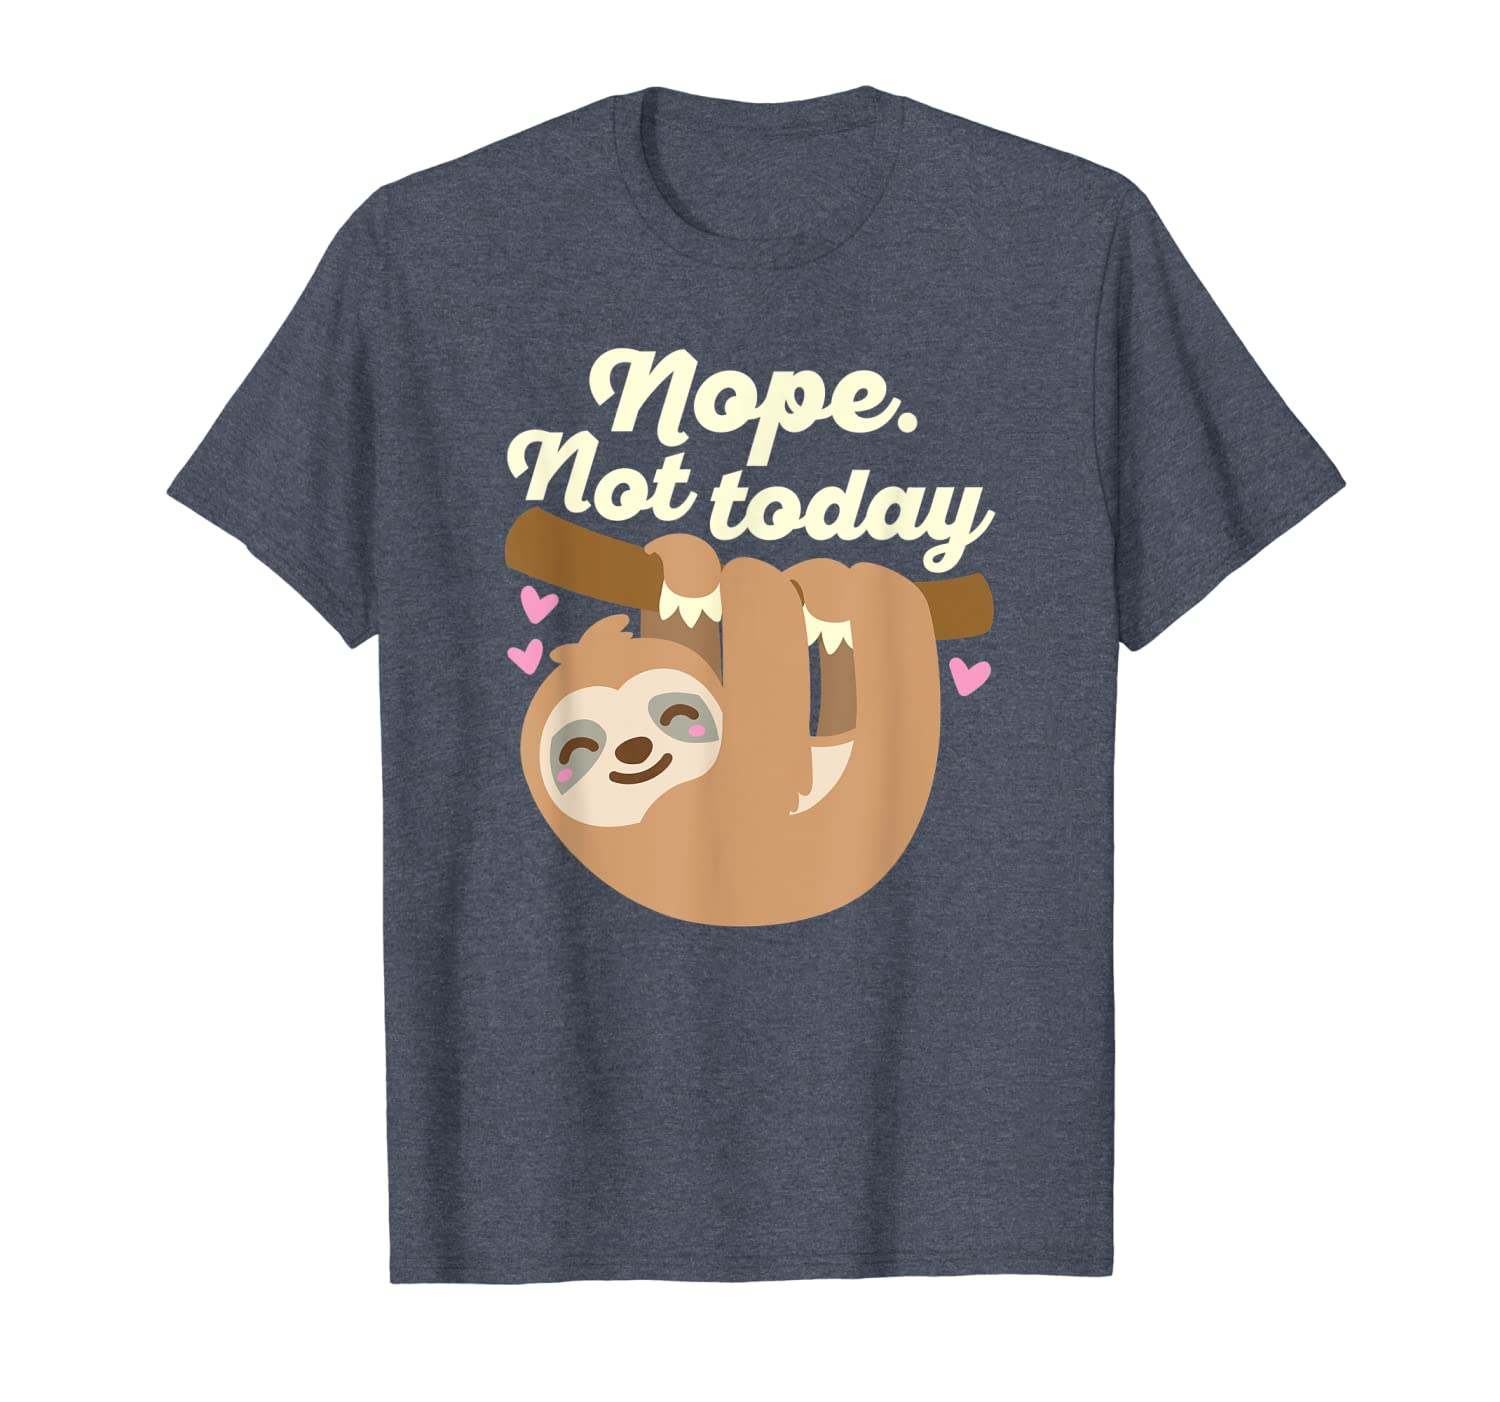 Nope Not Today Sloth Shirt Cute Lazy Tired (Dark)-TH